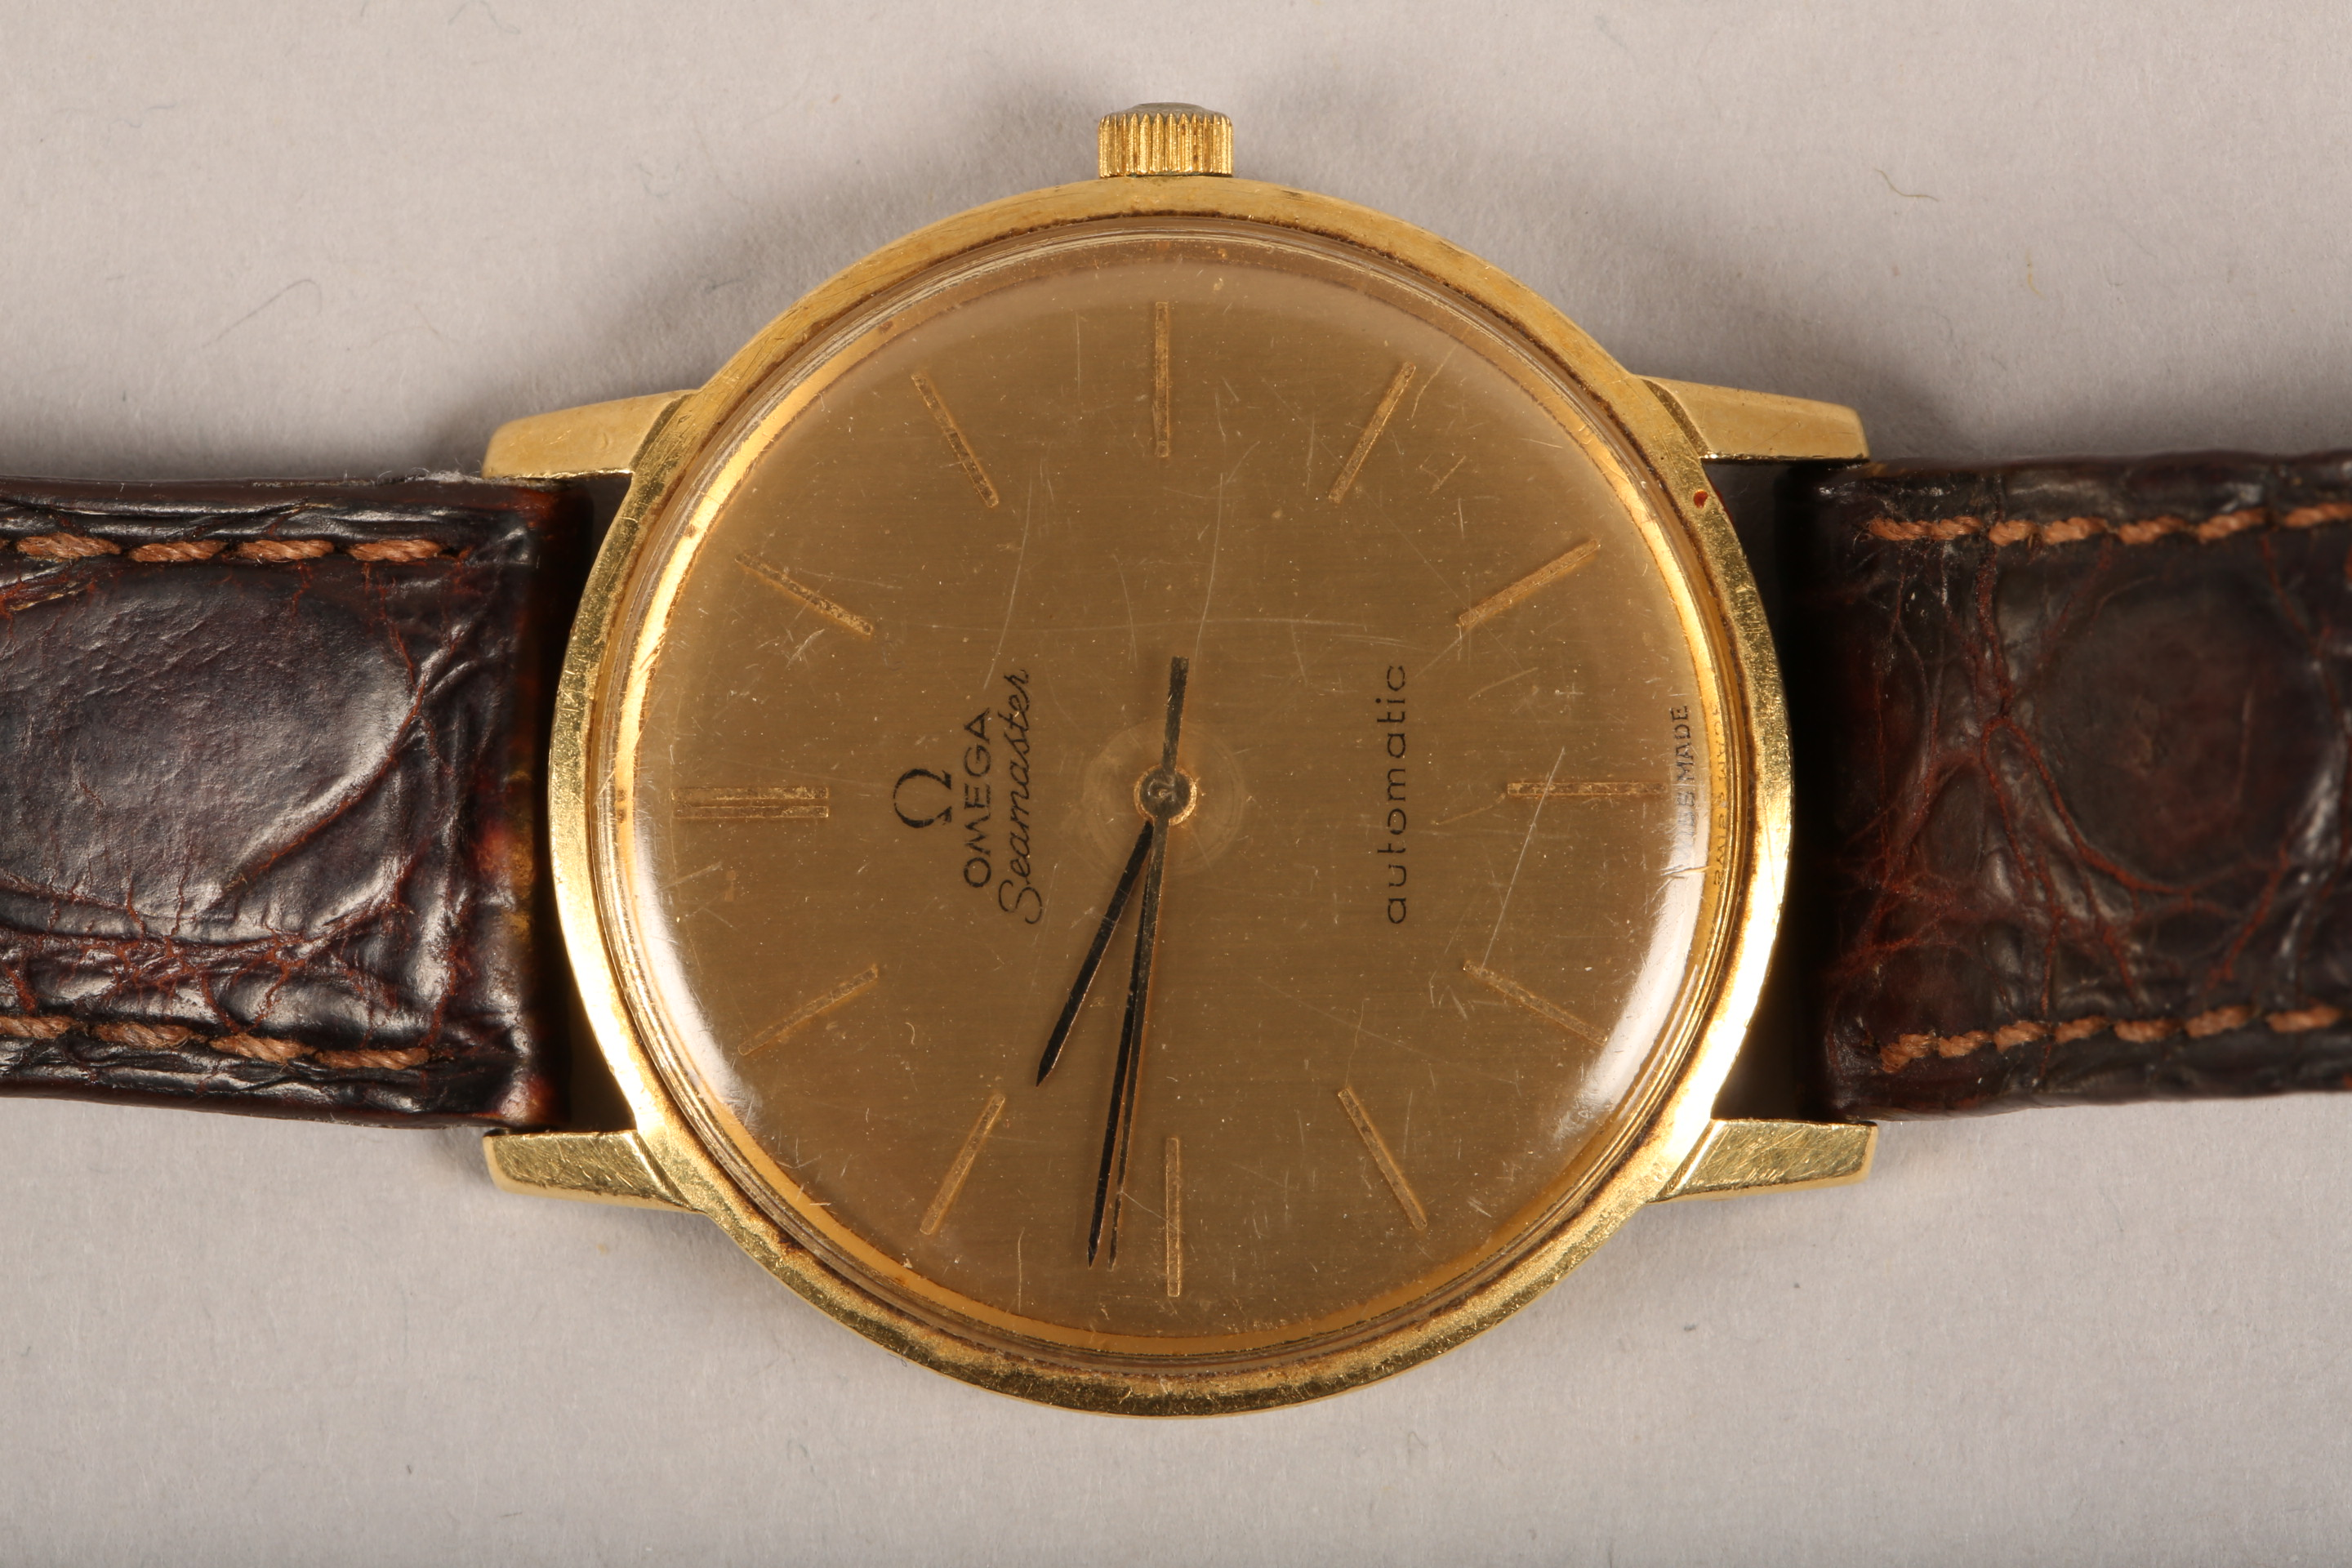 Gents 9 carat gold Omega Seamaster automatic wrist watch, dial with hour markers and sweeping - Image 8 of 10